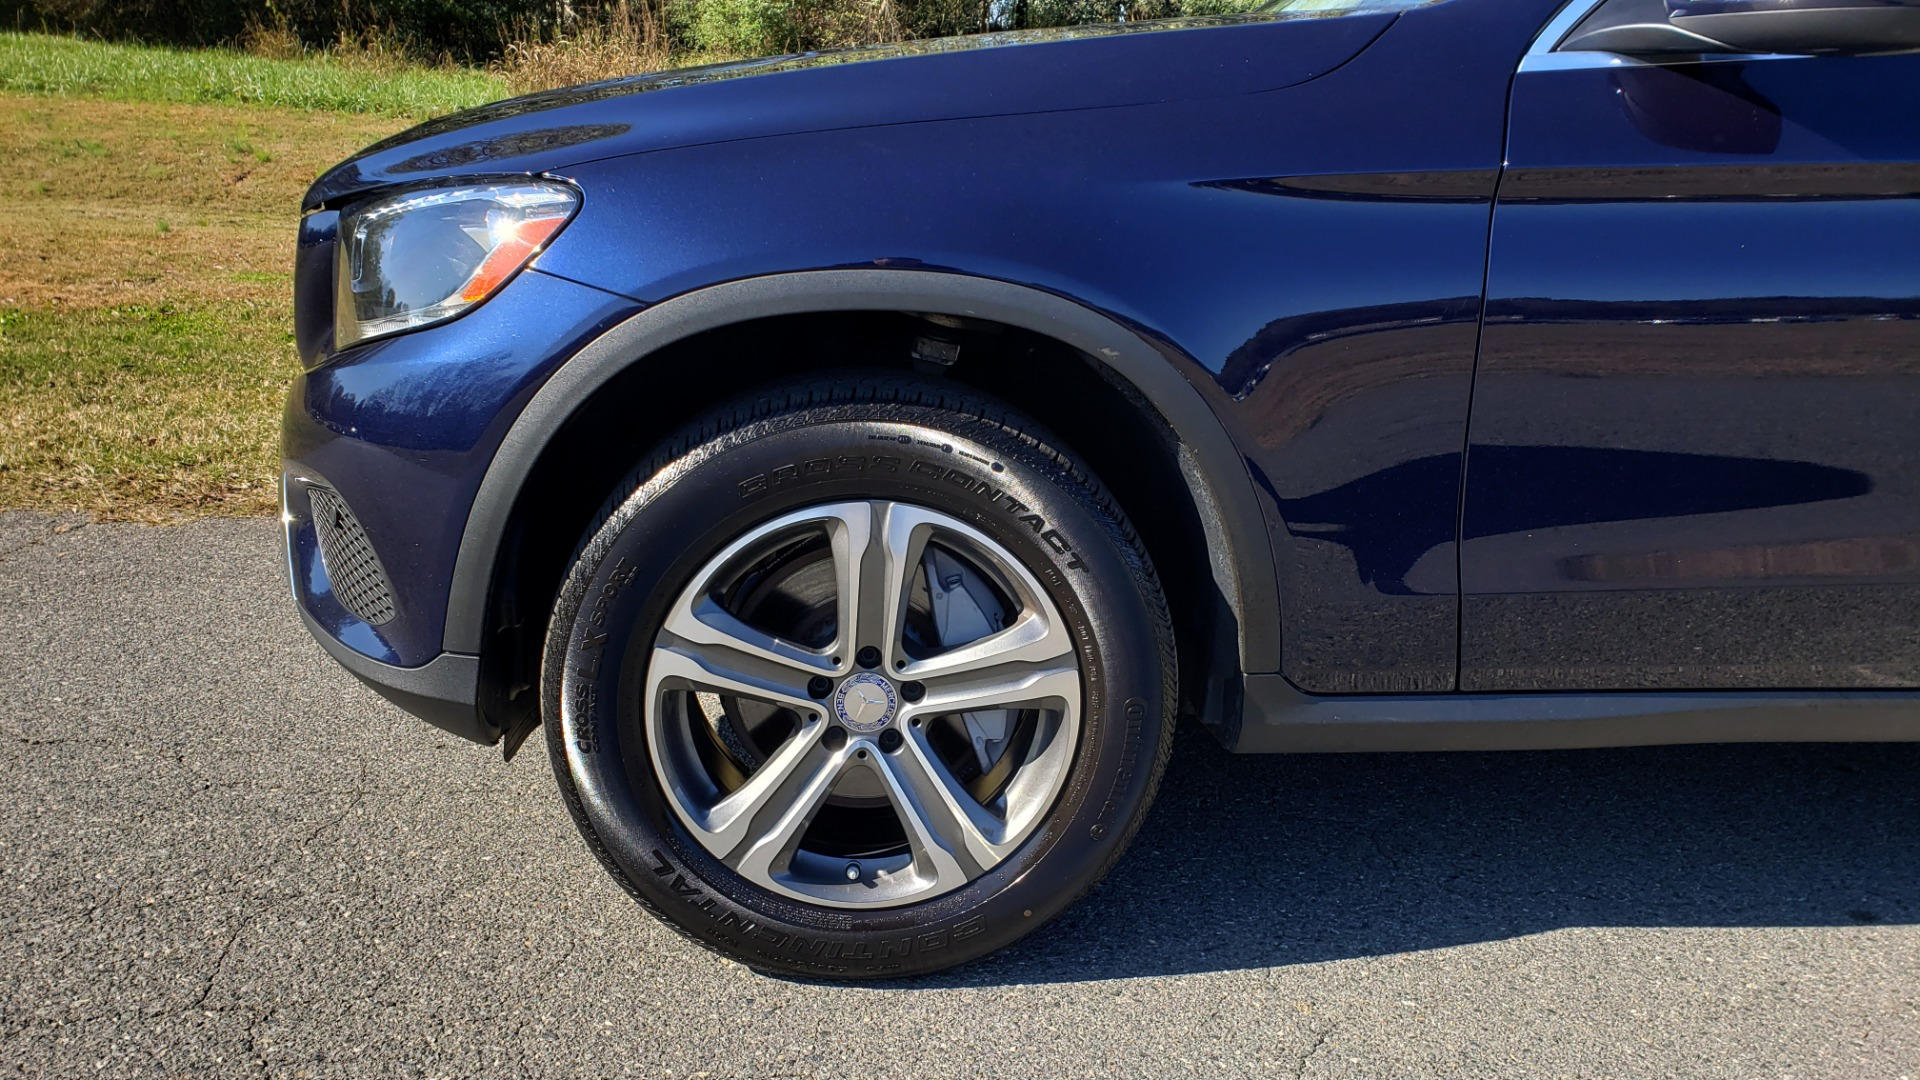 Used 2017 Mercedes-Benz GLC 300 4MATIC / PREM / NAV / KEYLESS-GO / SUNROOF / REARVIEW for sale Sold at Formula Imports in Charlotte NC 28227 73